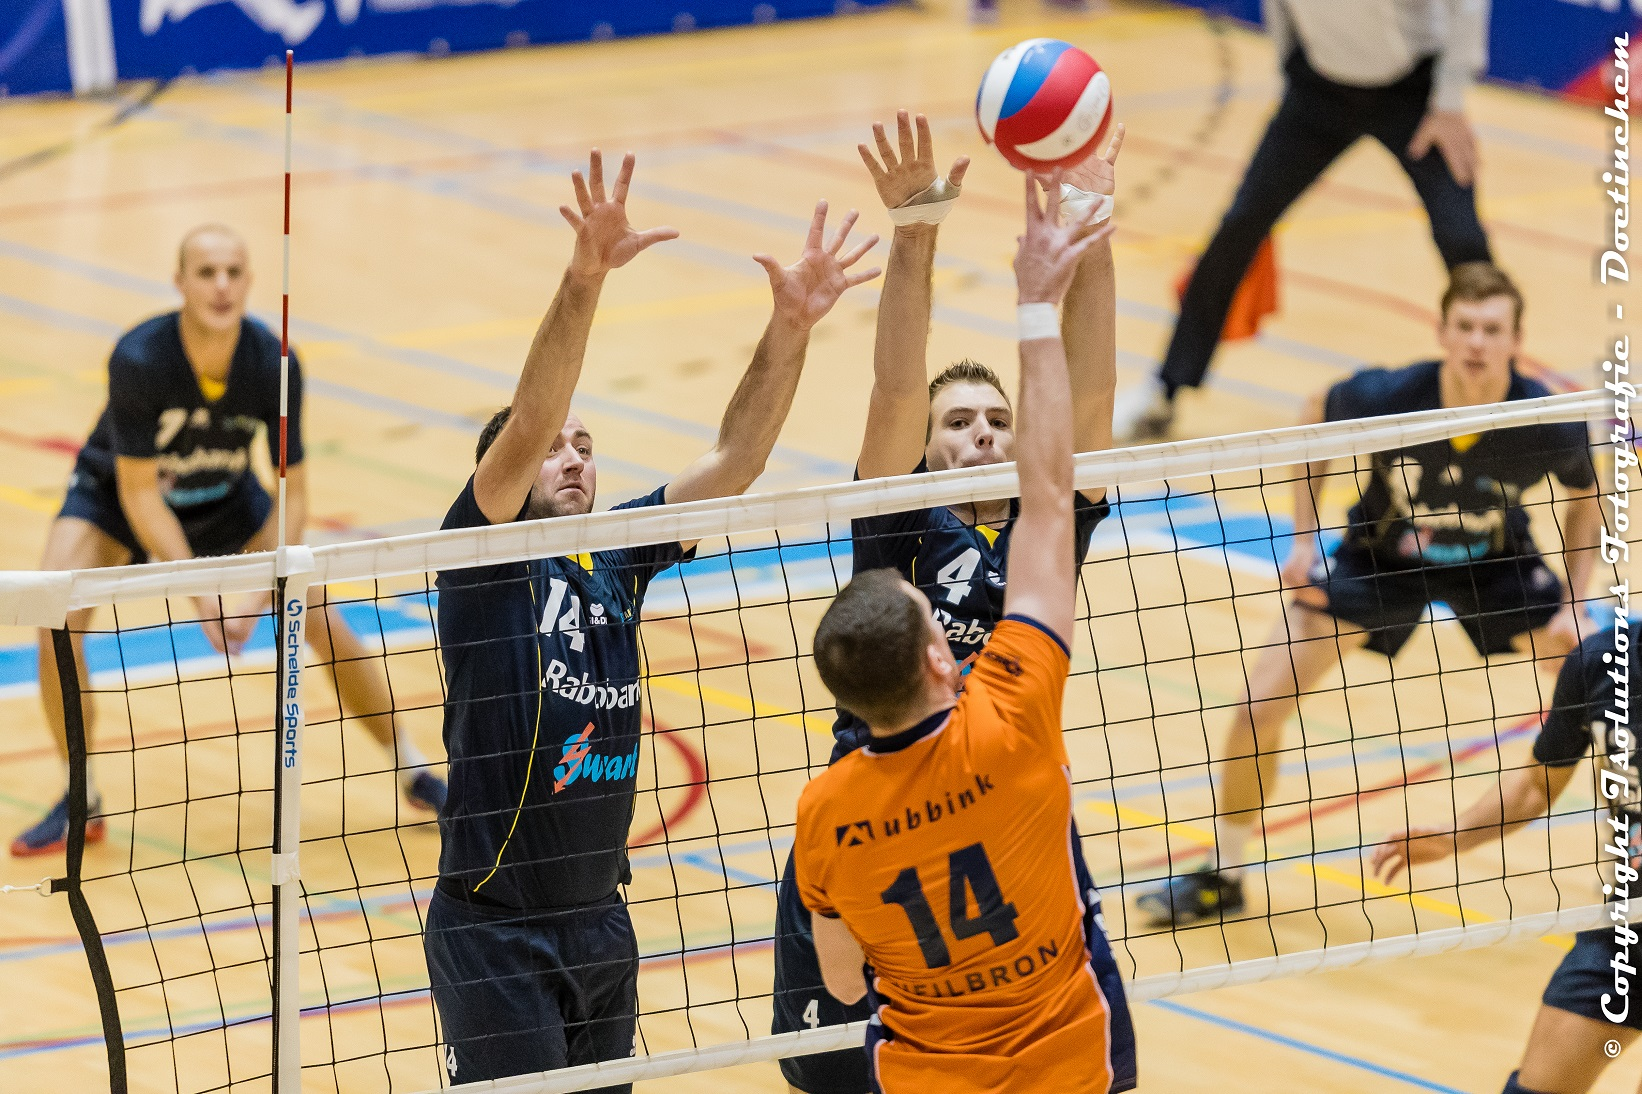 Orion Stichting Topvolleybal Orion